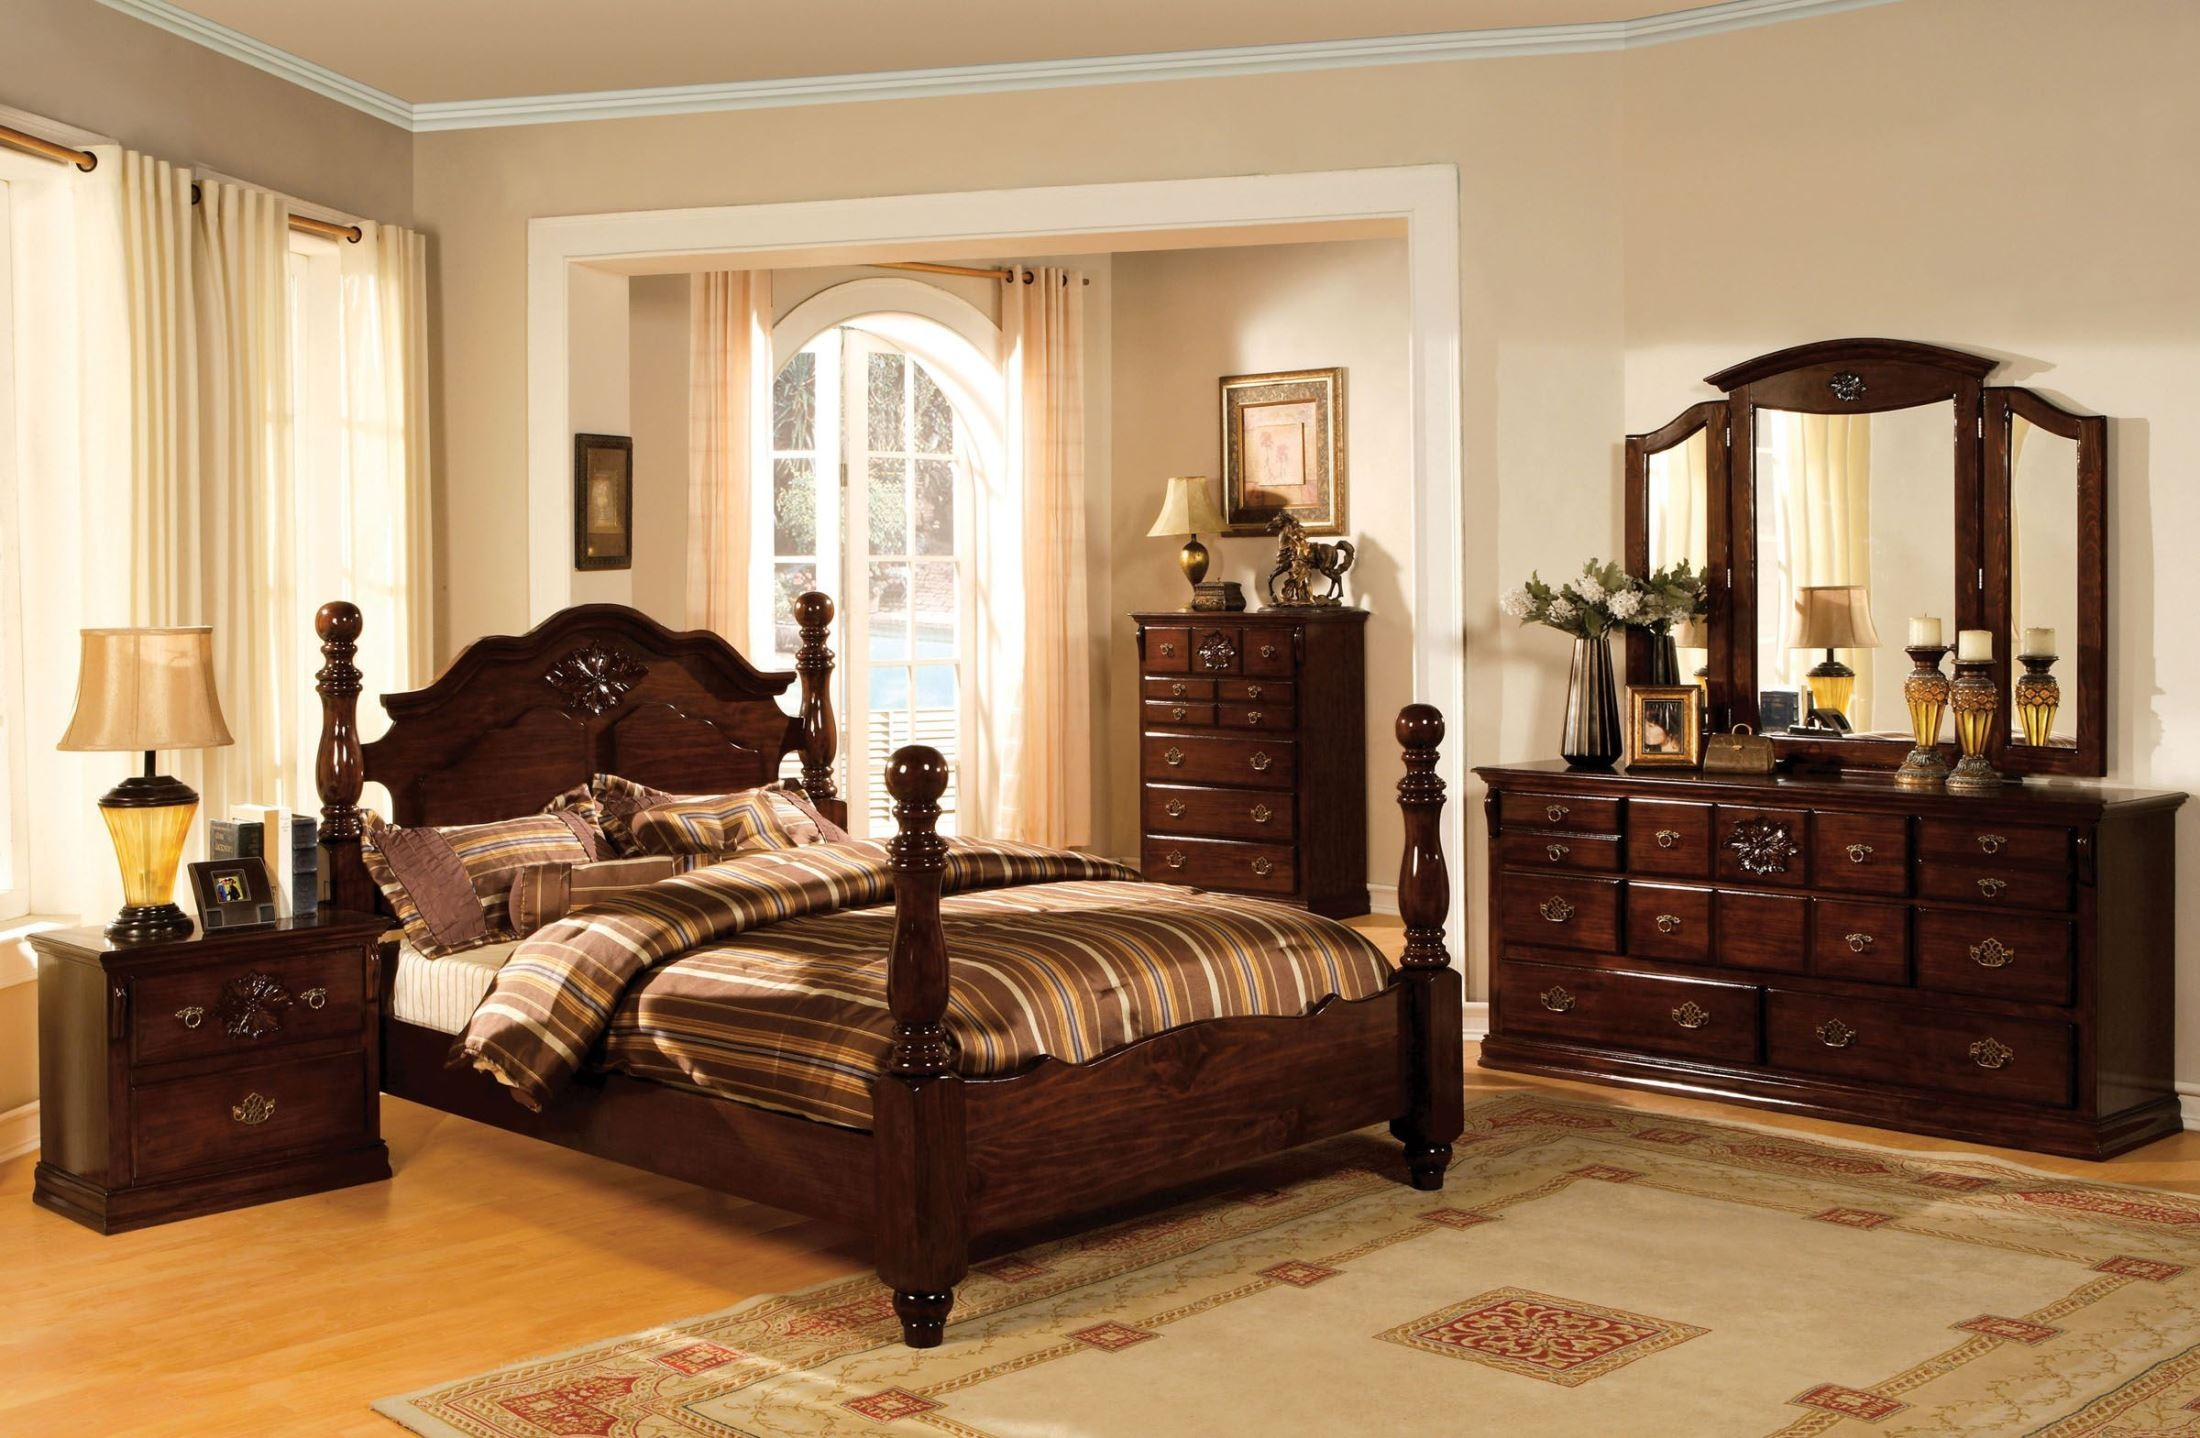 Victorian Style Home Furnishings Present In Interior Designs